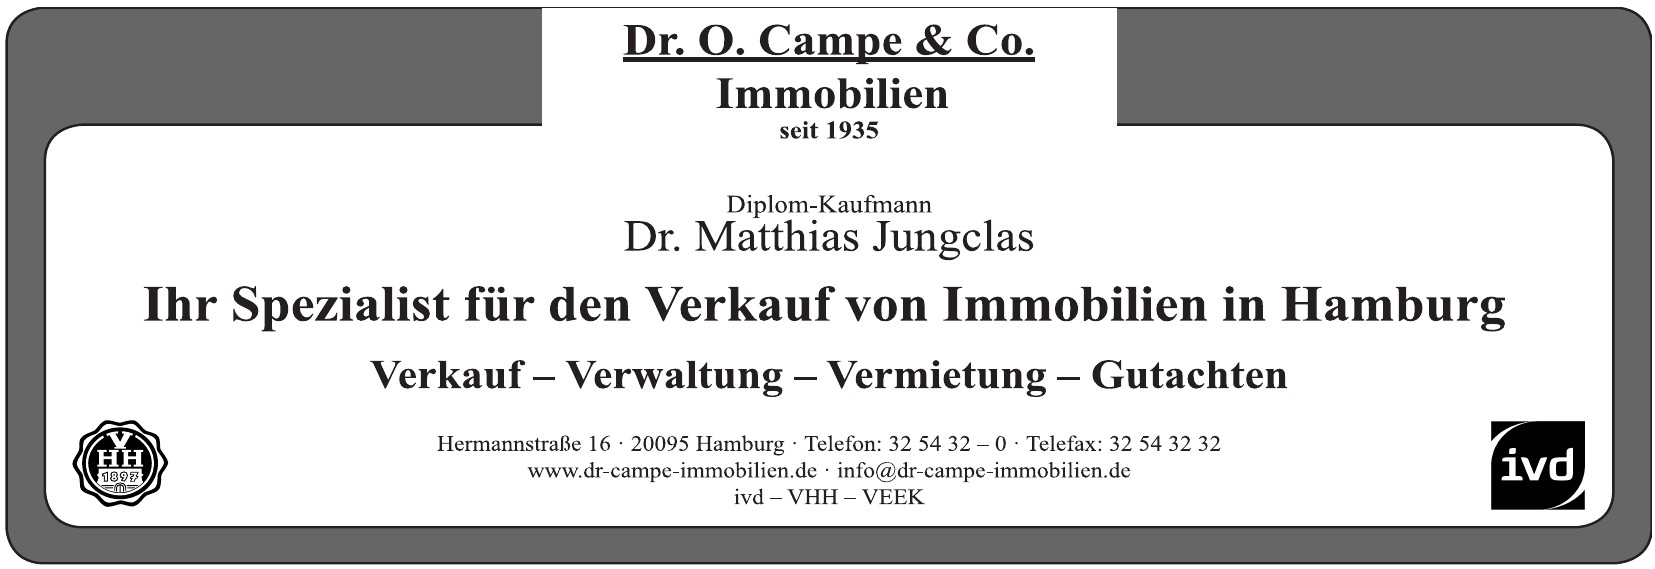 Dr. O. Campe & Co. Immobilien